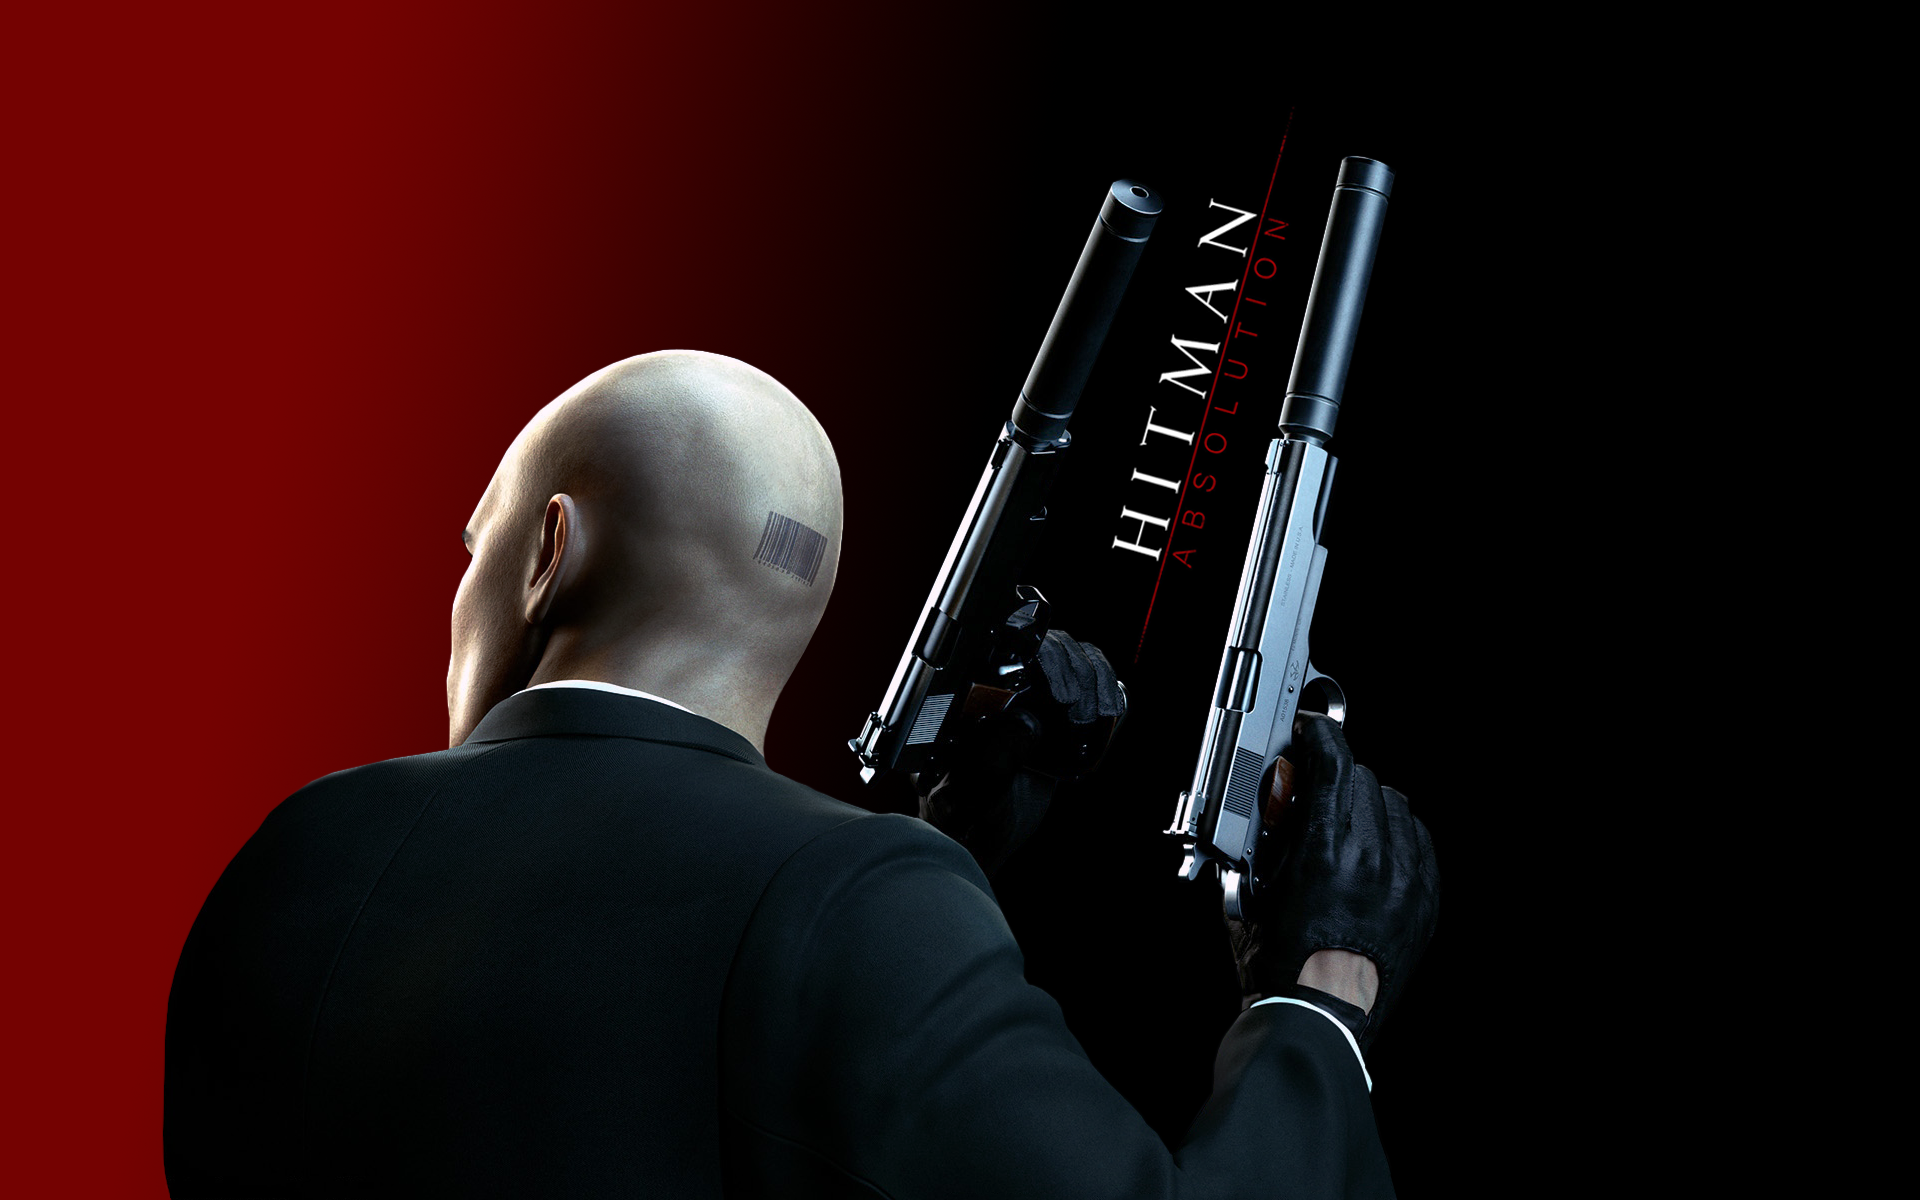 Free Download Hitman Absolution Wallpaper Available In Wuxga